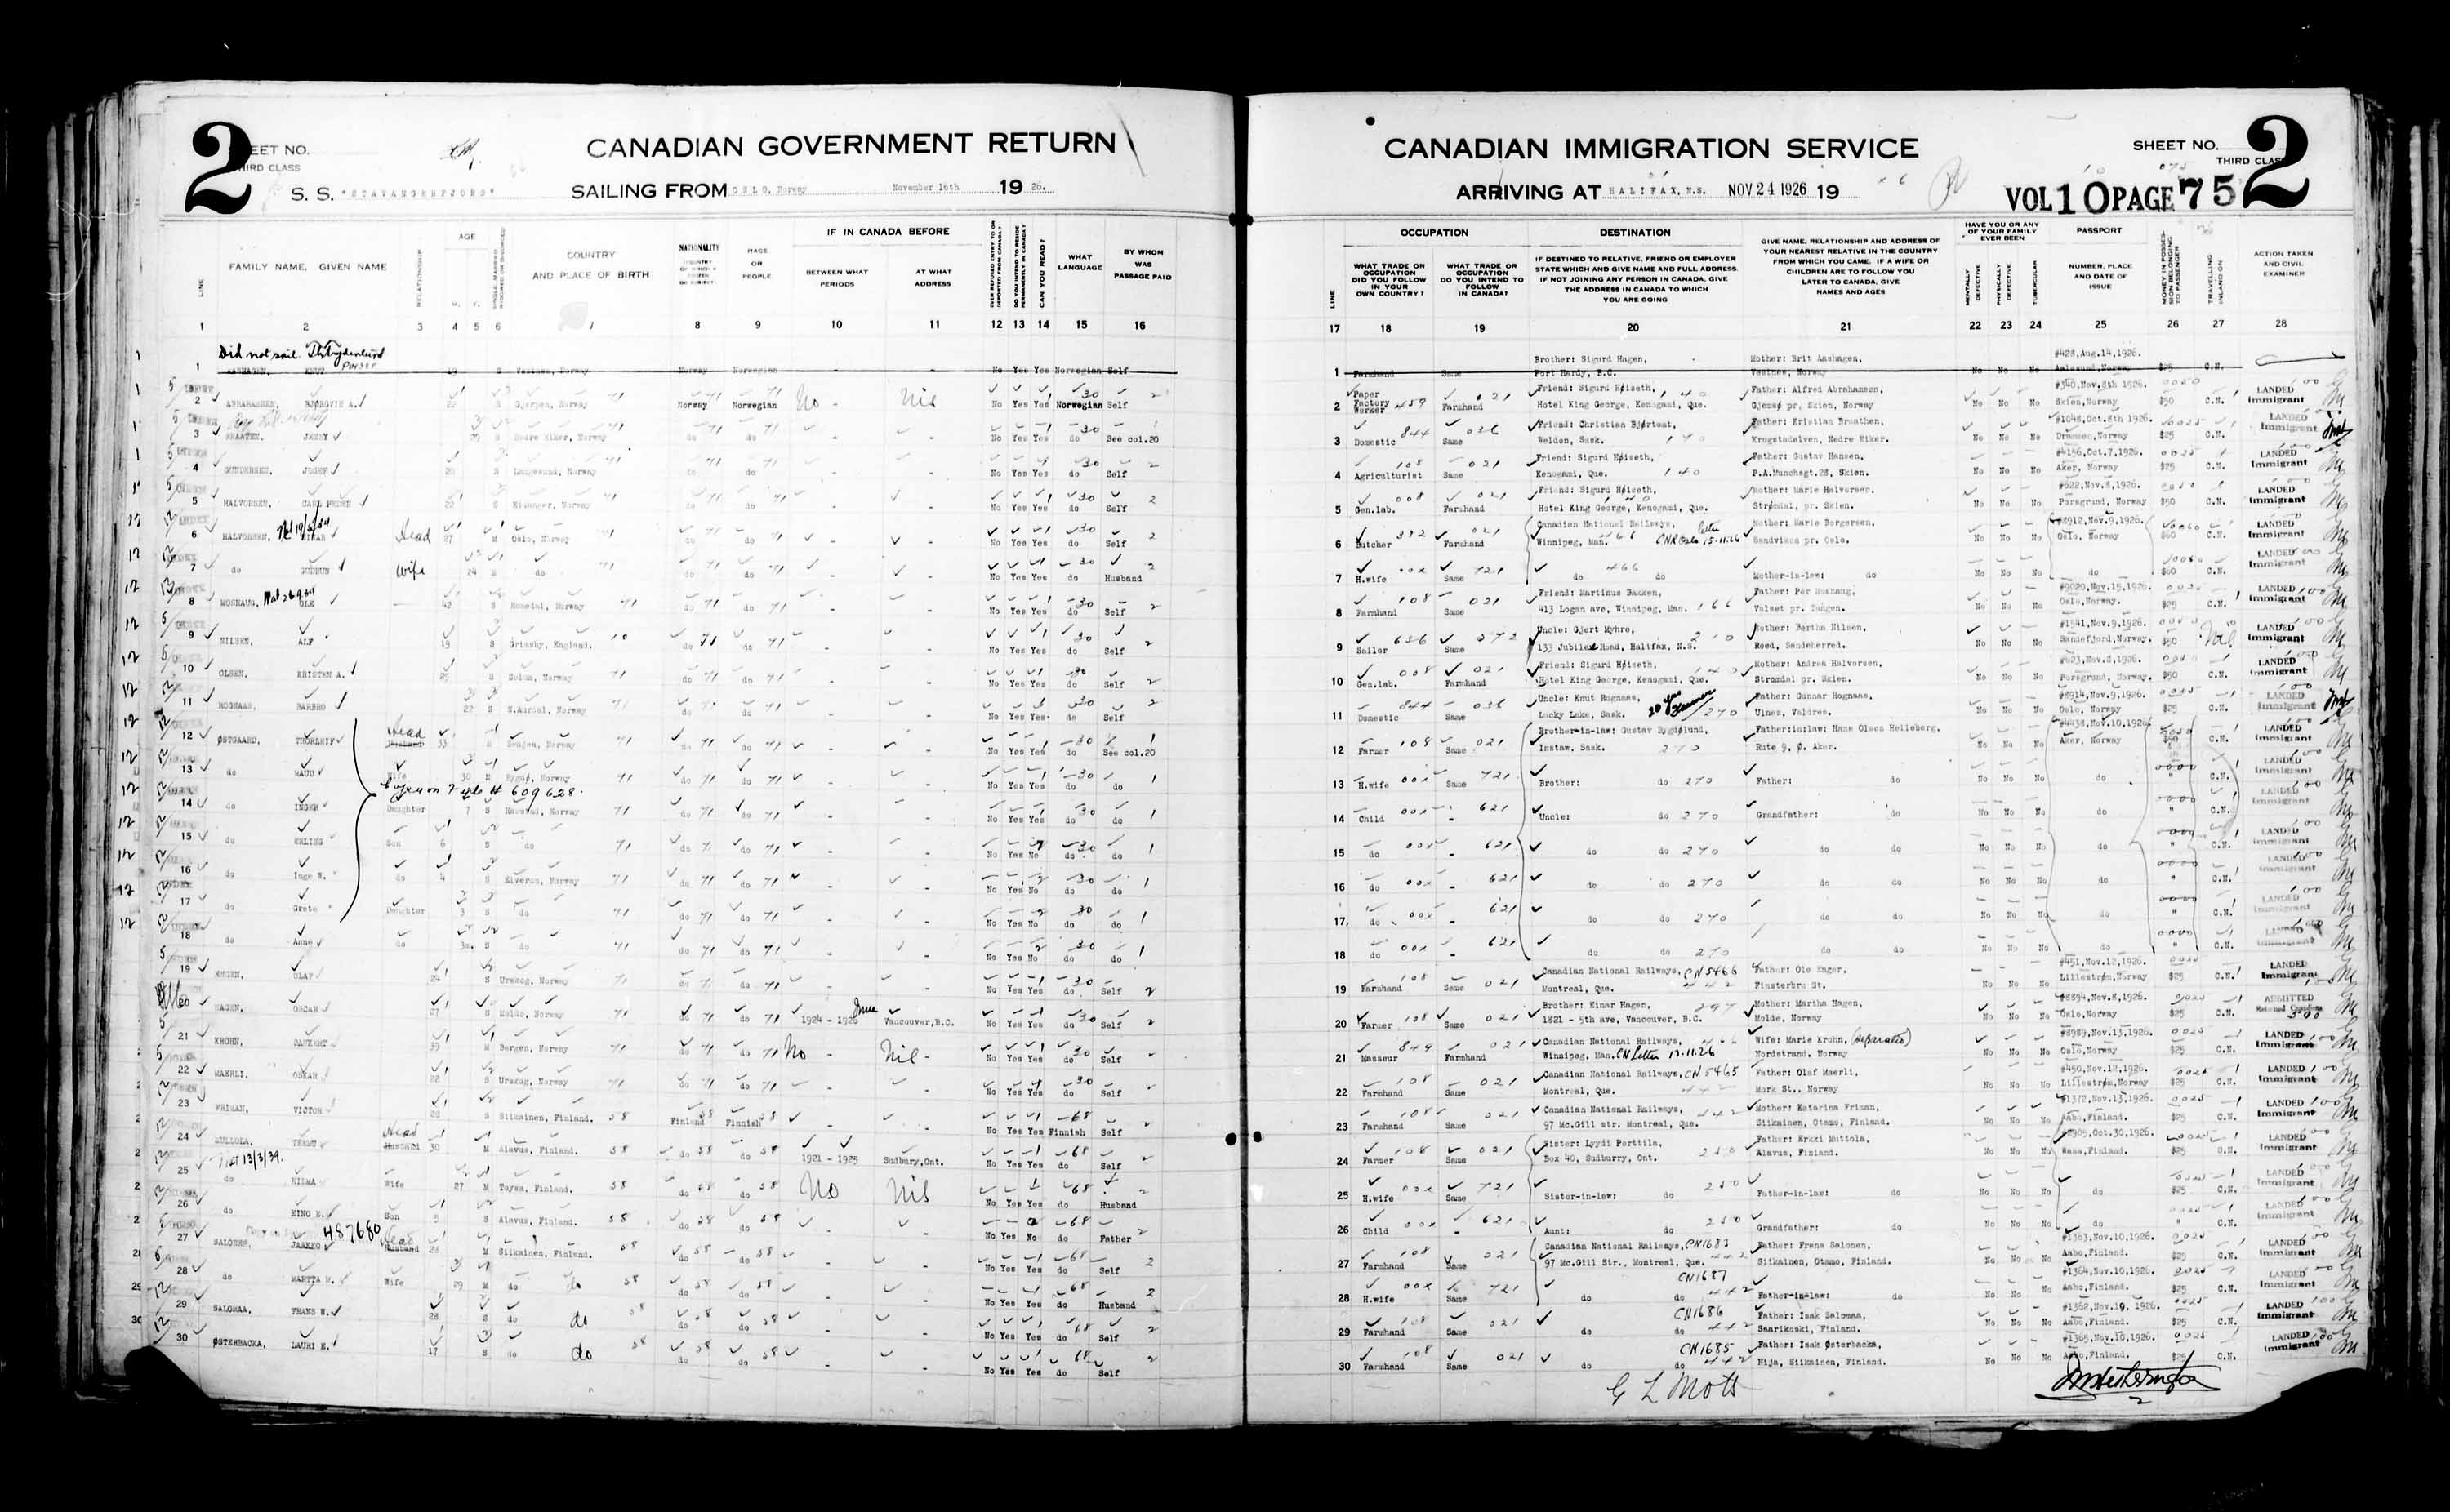 Title: Passenger Lists: Halifax (1925-1935) - Mikan Number: 134853 - Microform: t-14806